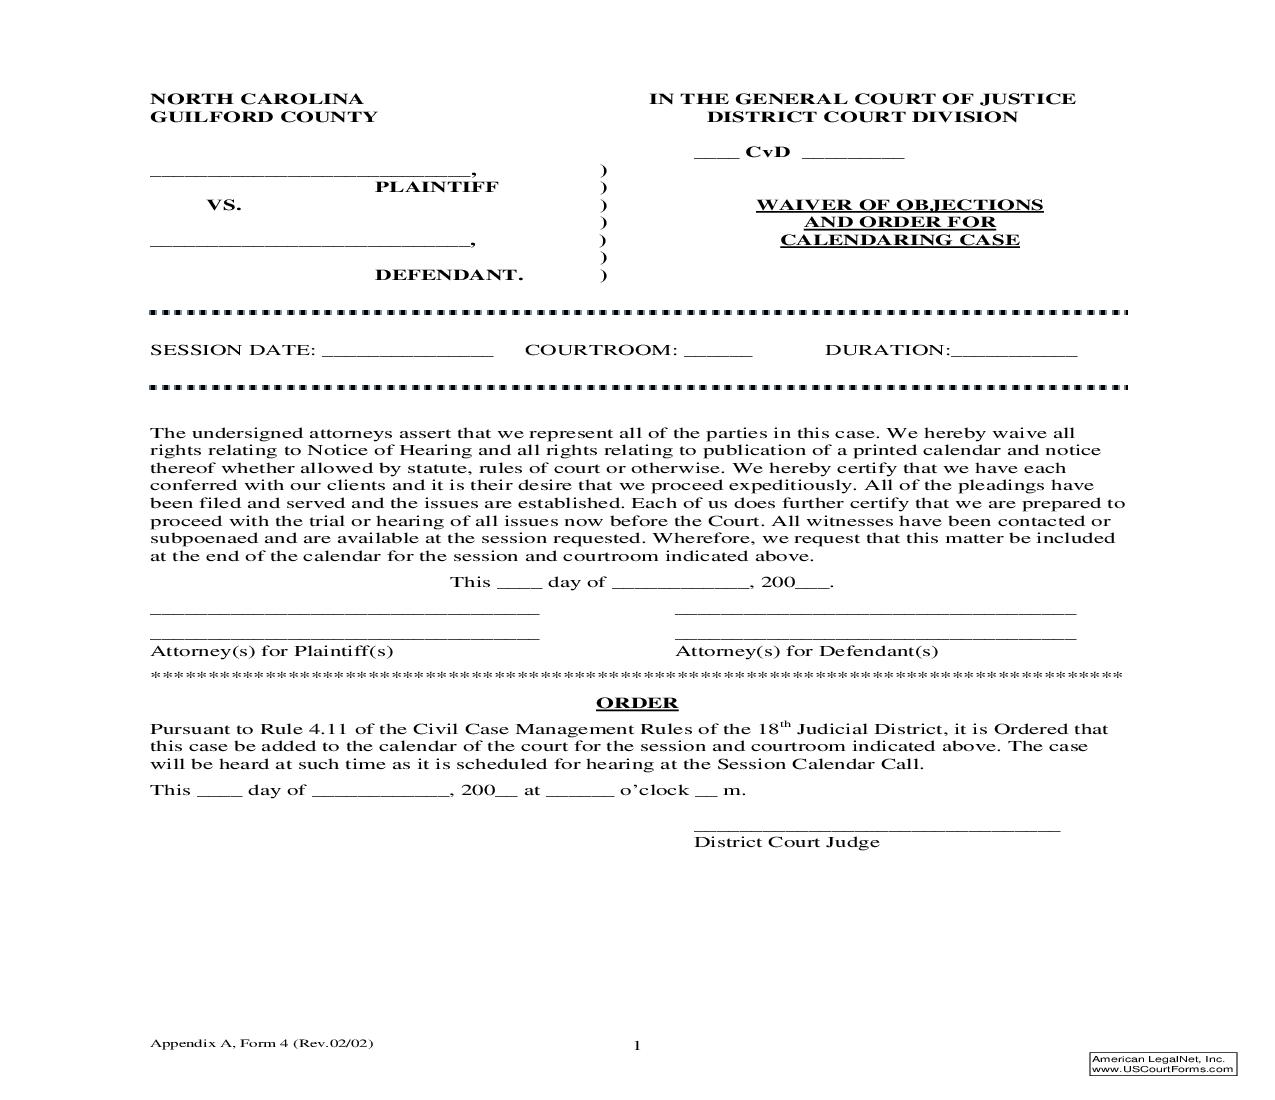 Waiver Of Objections And Order For Calendaring Case {Form 04-Appendix A} | Pdf Fpdf Doc Docx | North Carolina